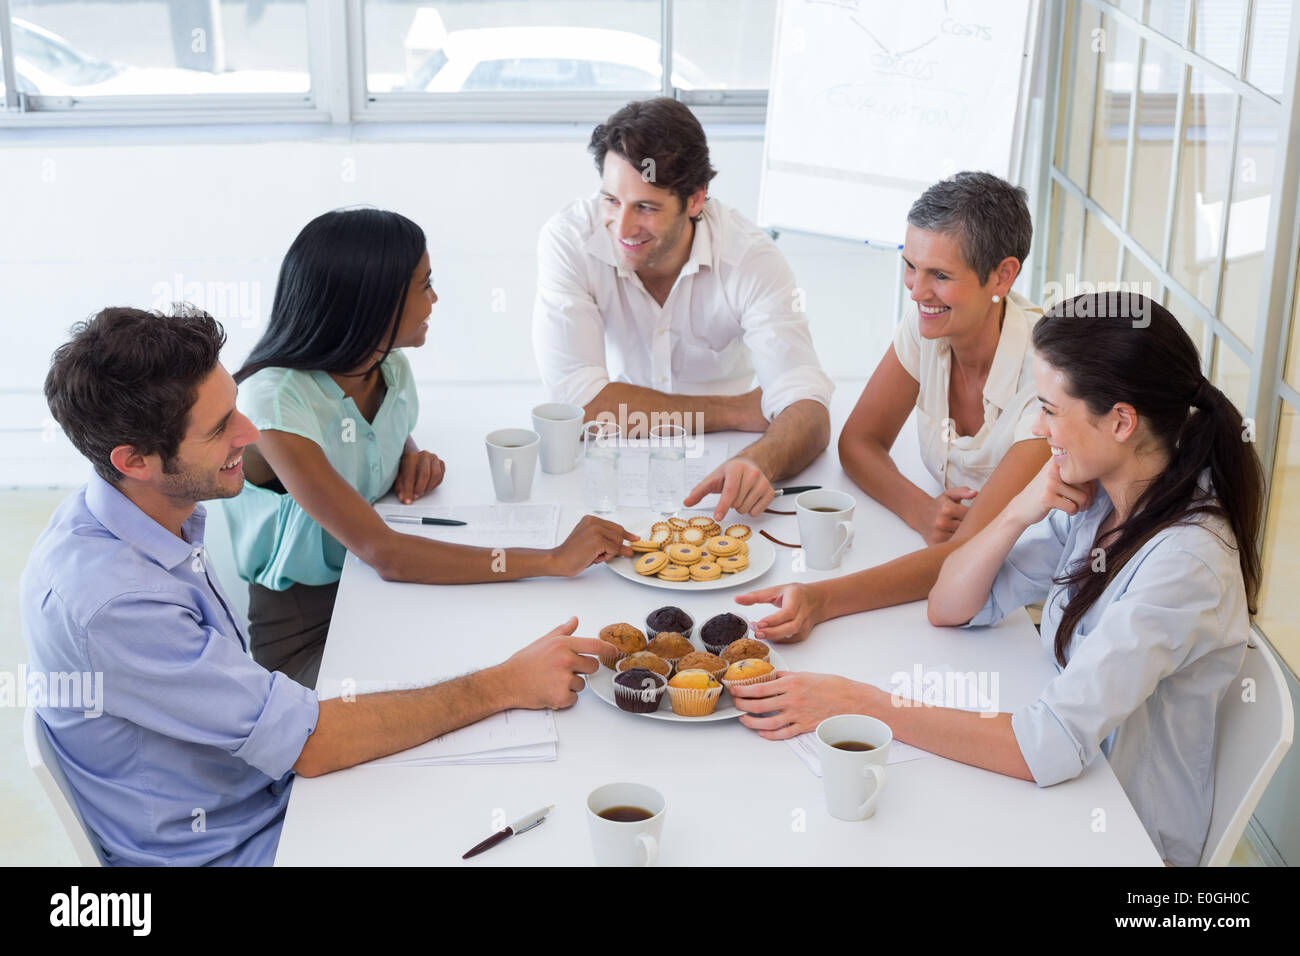 Business people chat while eating muffins and drinking coffee - Stock Image